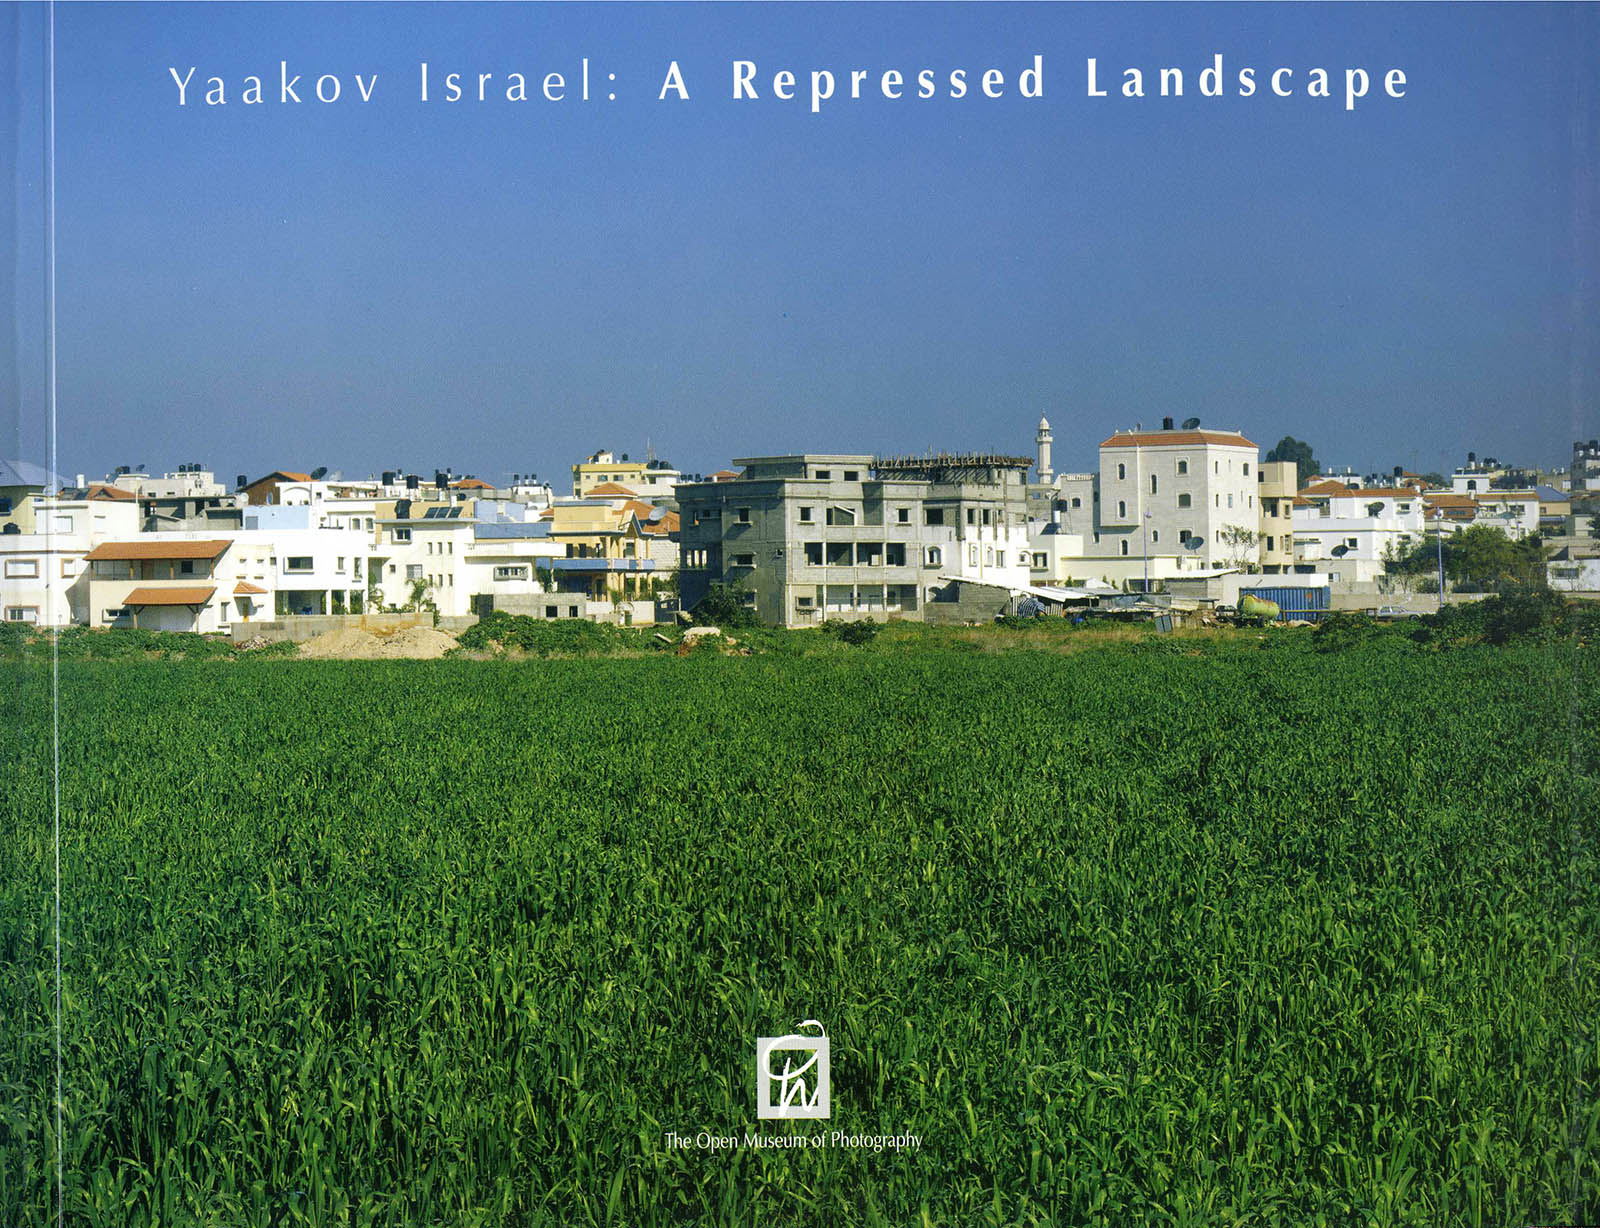 Catalogue, The Open Museum of Photography at Tel-Hai Industrial Park, 2005